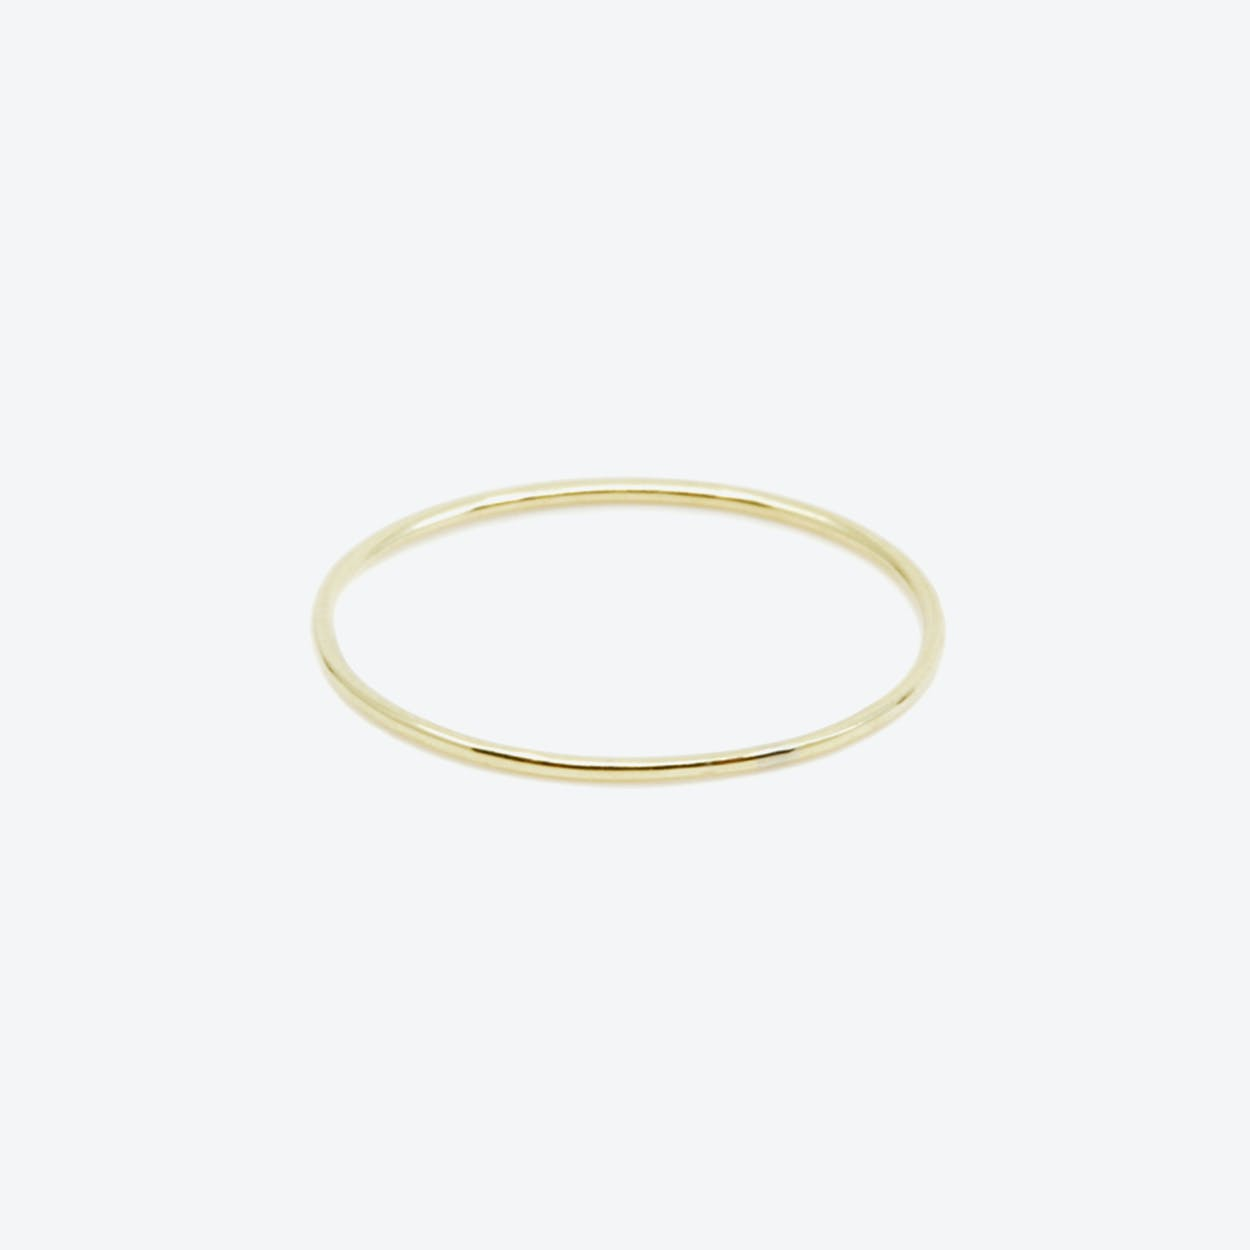 RING Thin in Yellow Gold